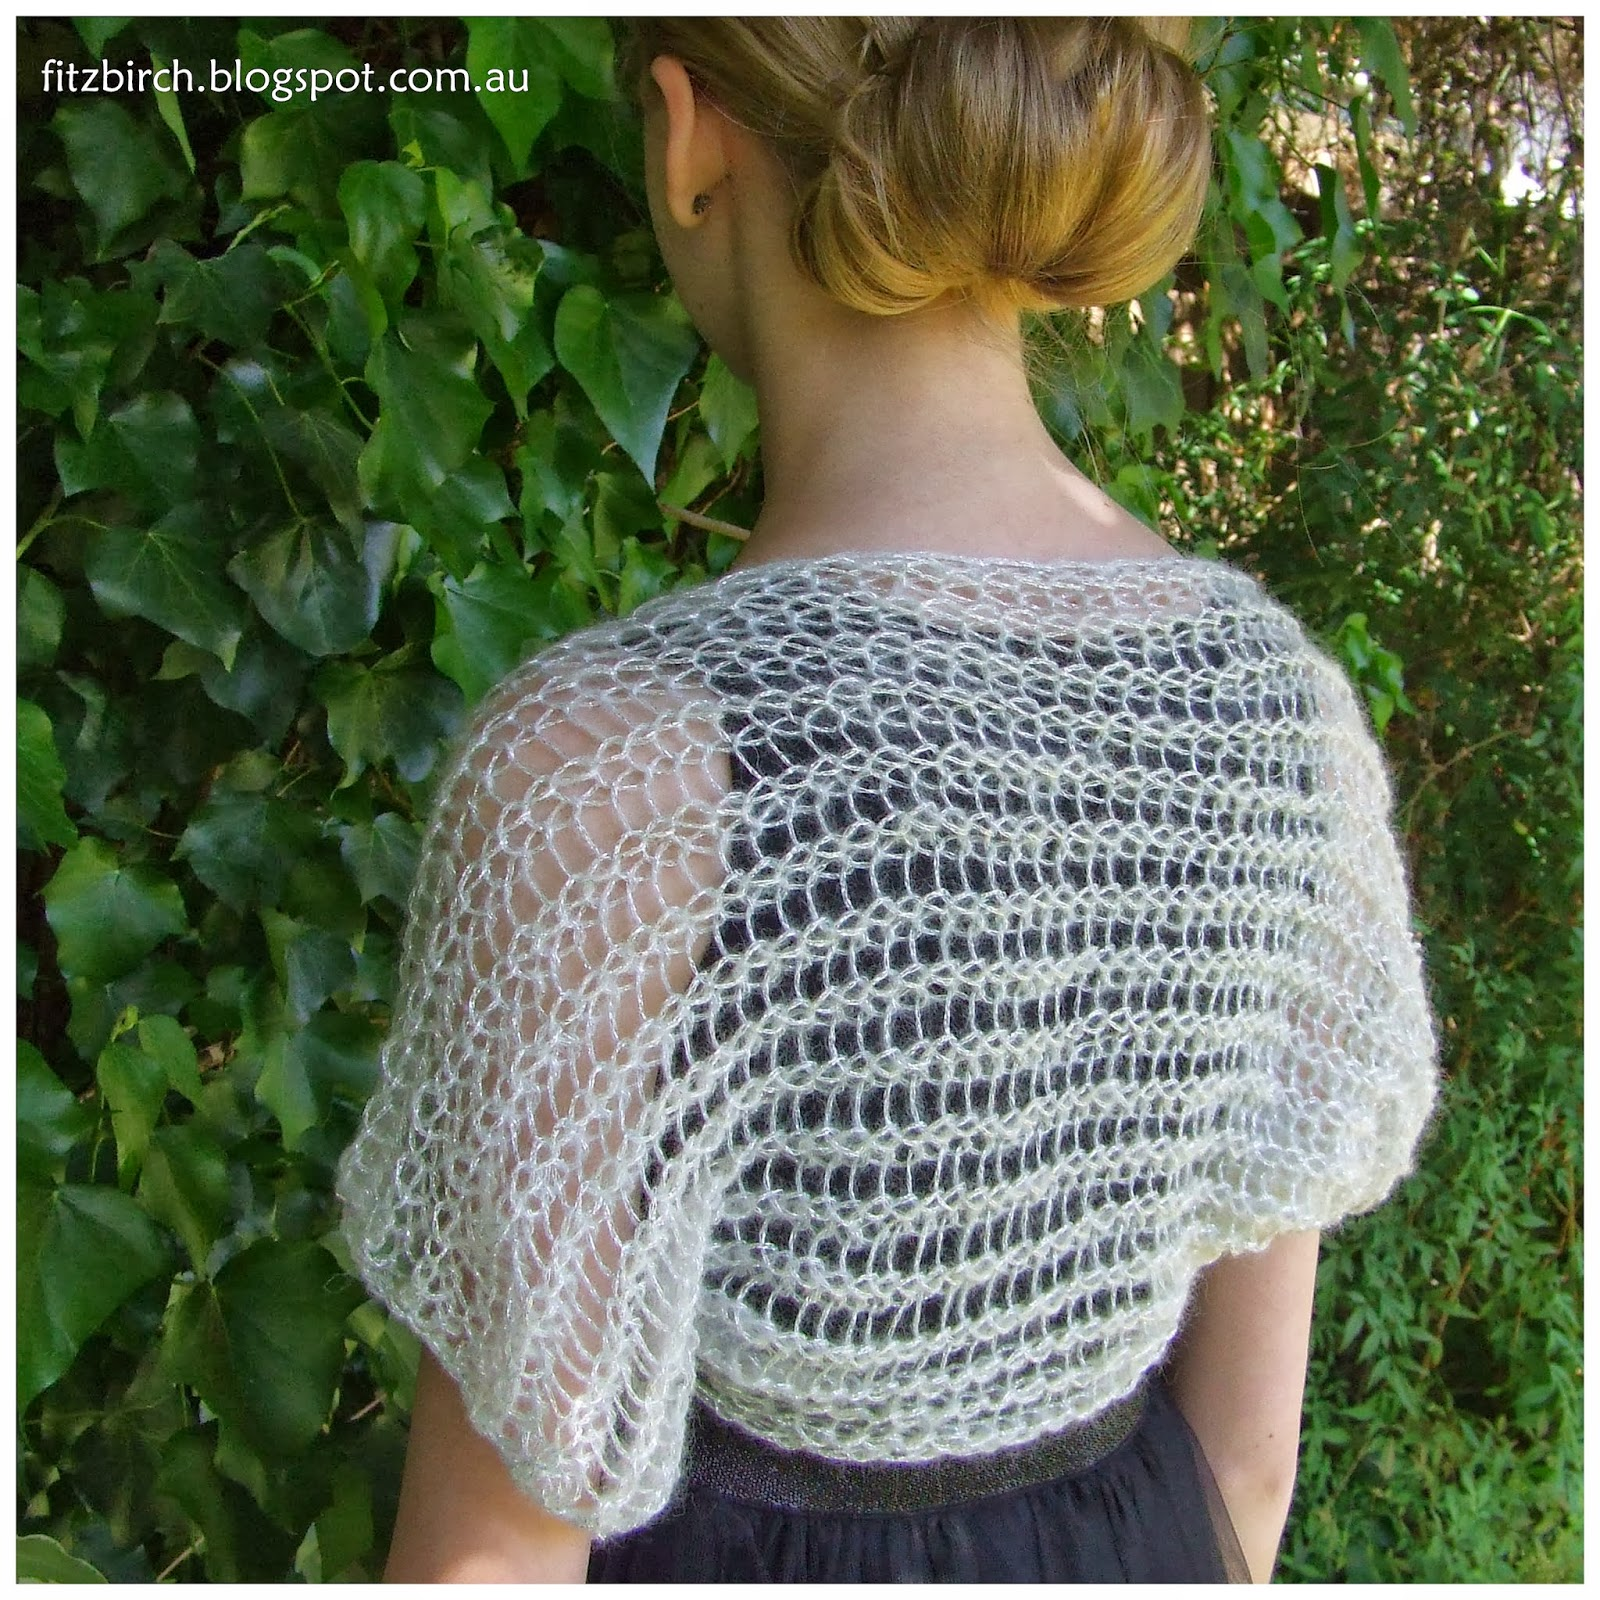 Loom Knitting Free Patterns : Fitzbirch crafts free loom knit patterns